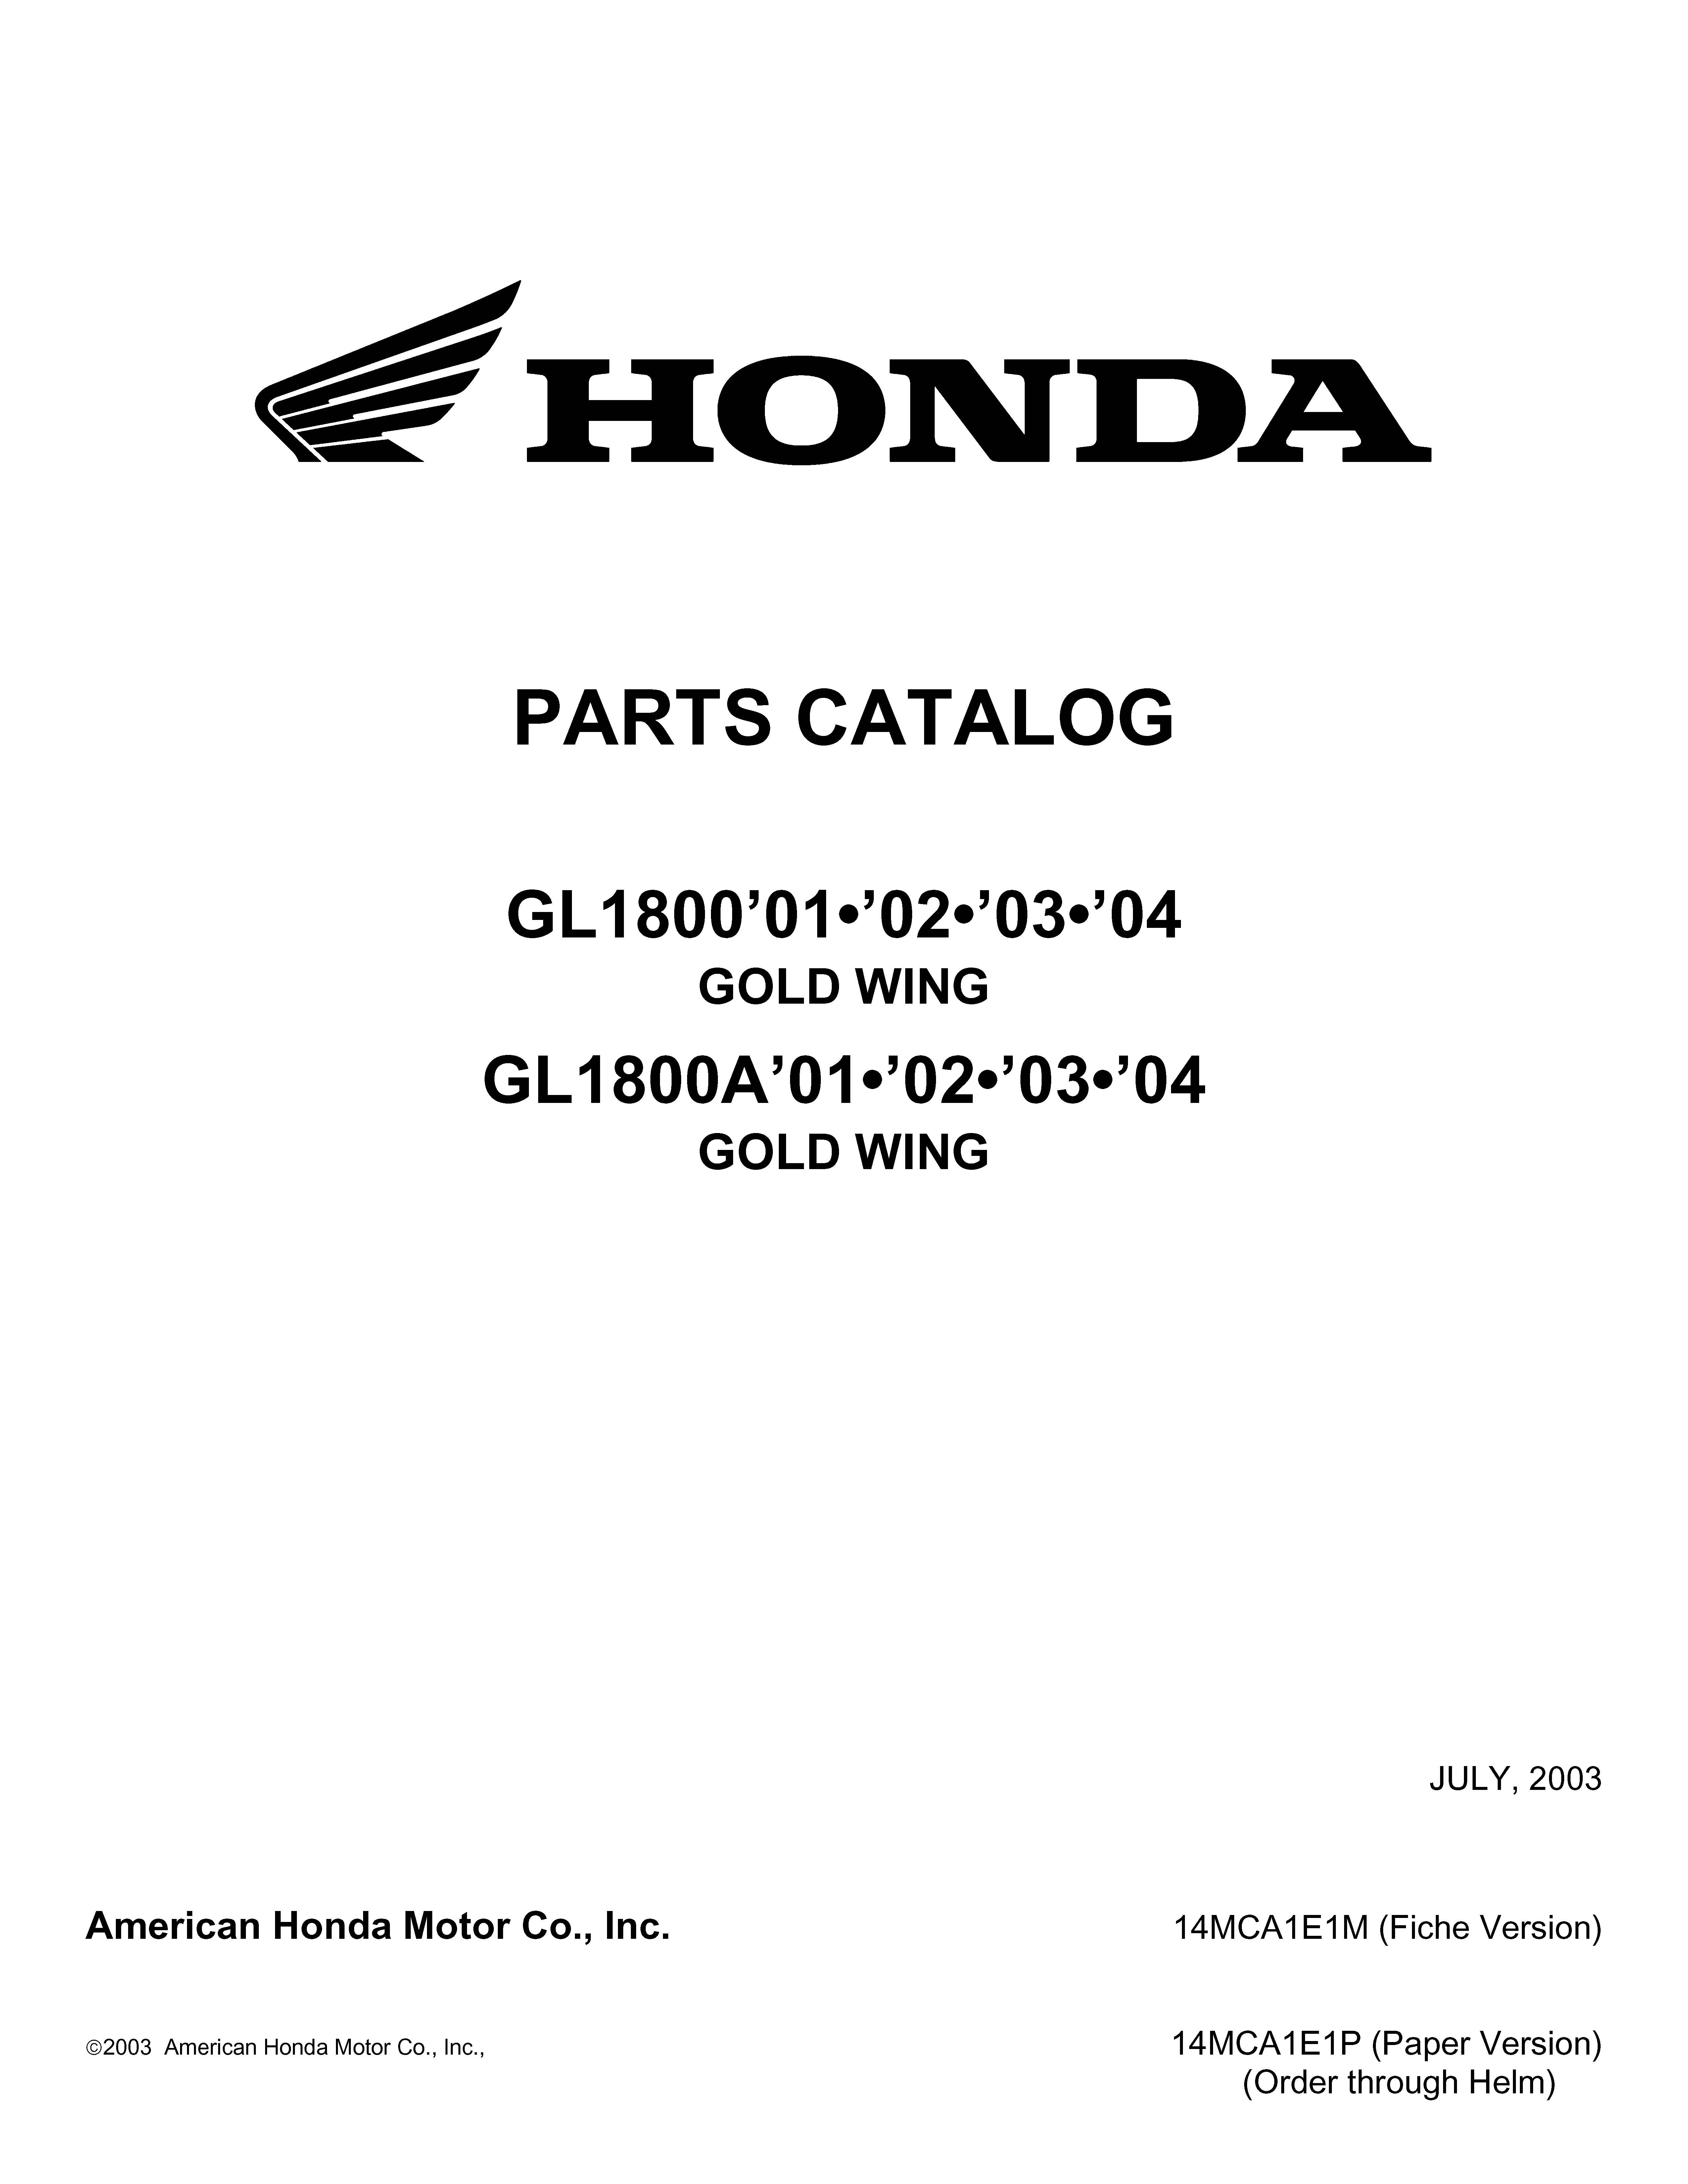 Parts list for Honda GL1800A (2001-2004)